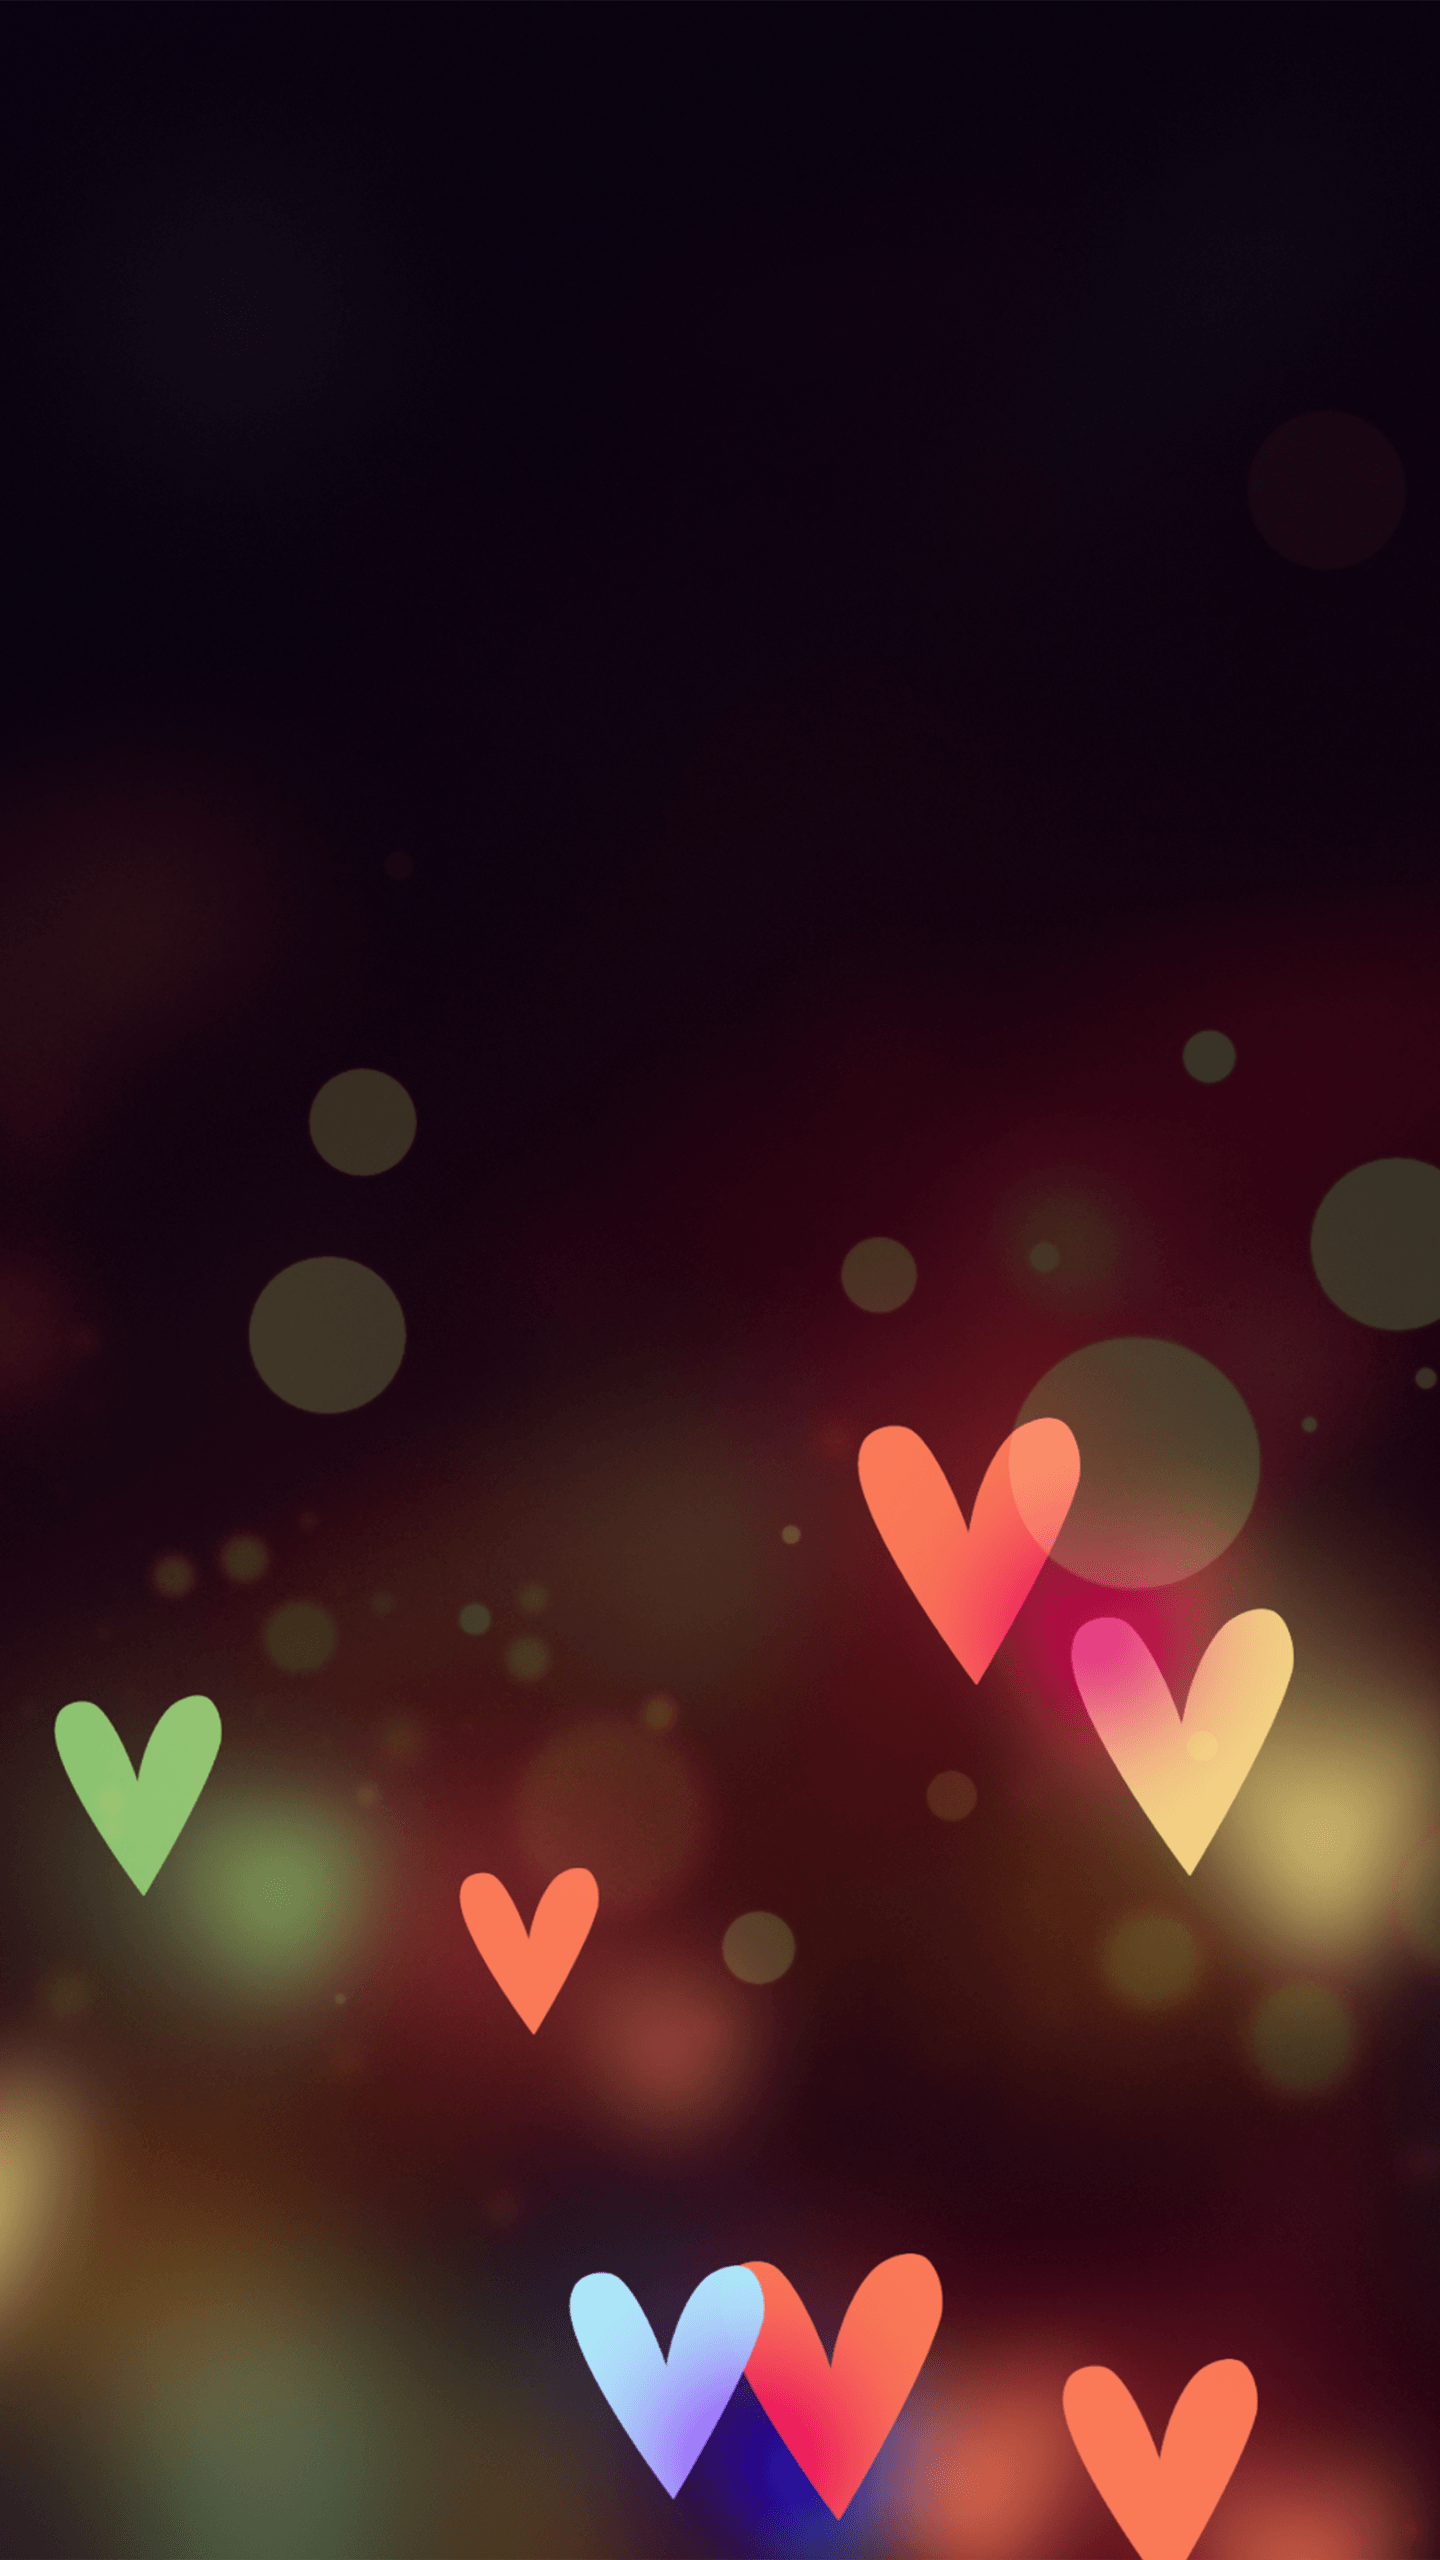 Free Download Love Iphone Wallpapers Top Love Iphone Backgrounds